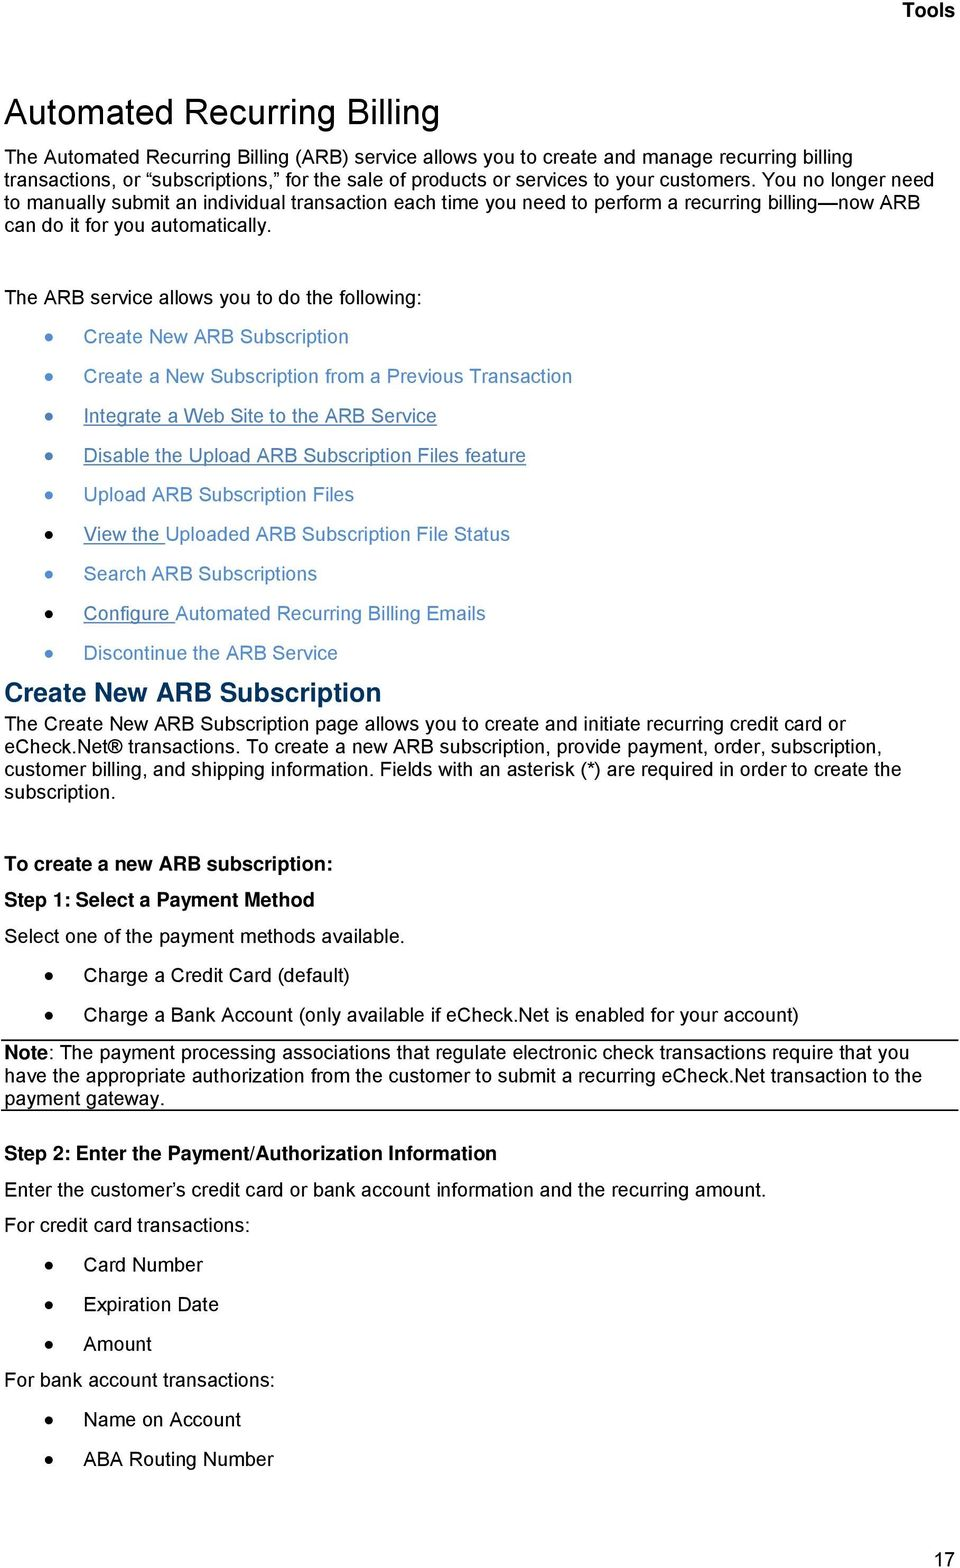 The ARB service allows you to do the following: Create New ARB Subscription Create a New Subscription from a Previous Transaction Integrate a Web Site to the ARB Service Disable the Upload ARB